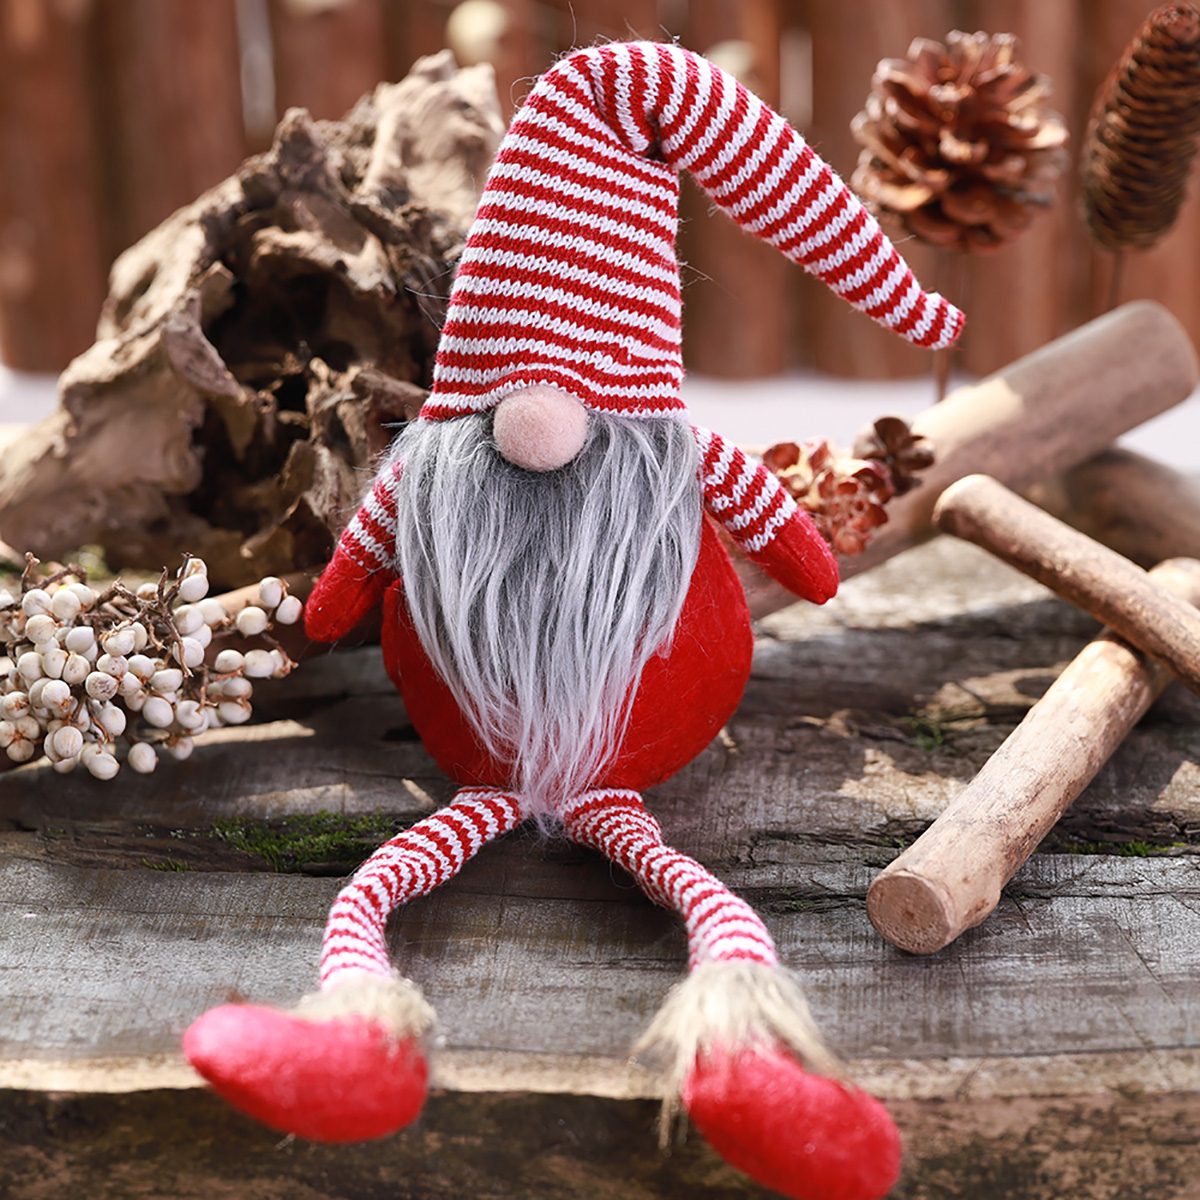 Non-Woven Hat With Long Legs Handmade Gnome Santa Christmas Figurines Ornament Decorations Toys - Photo: 4